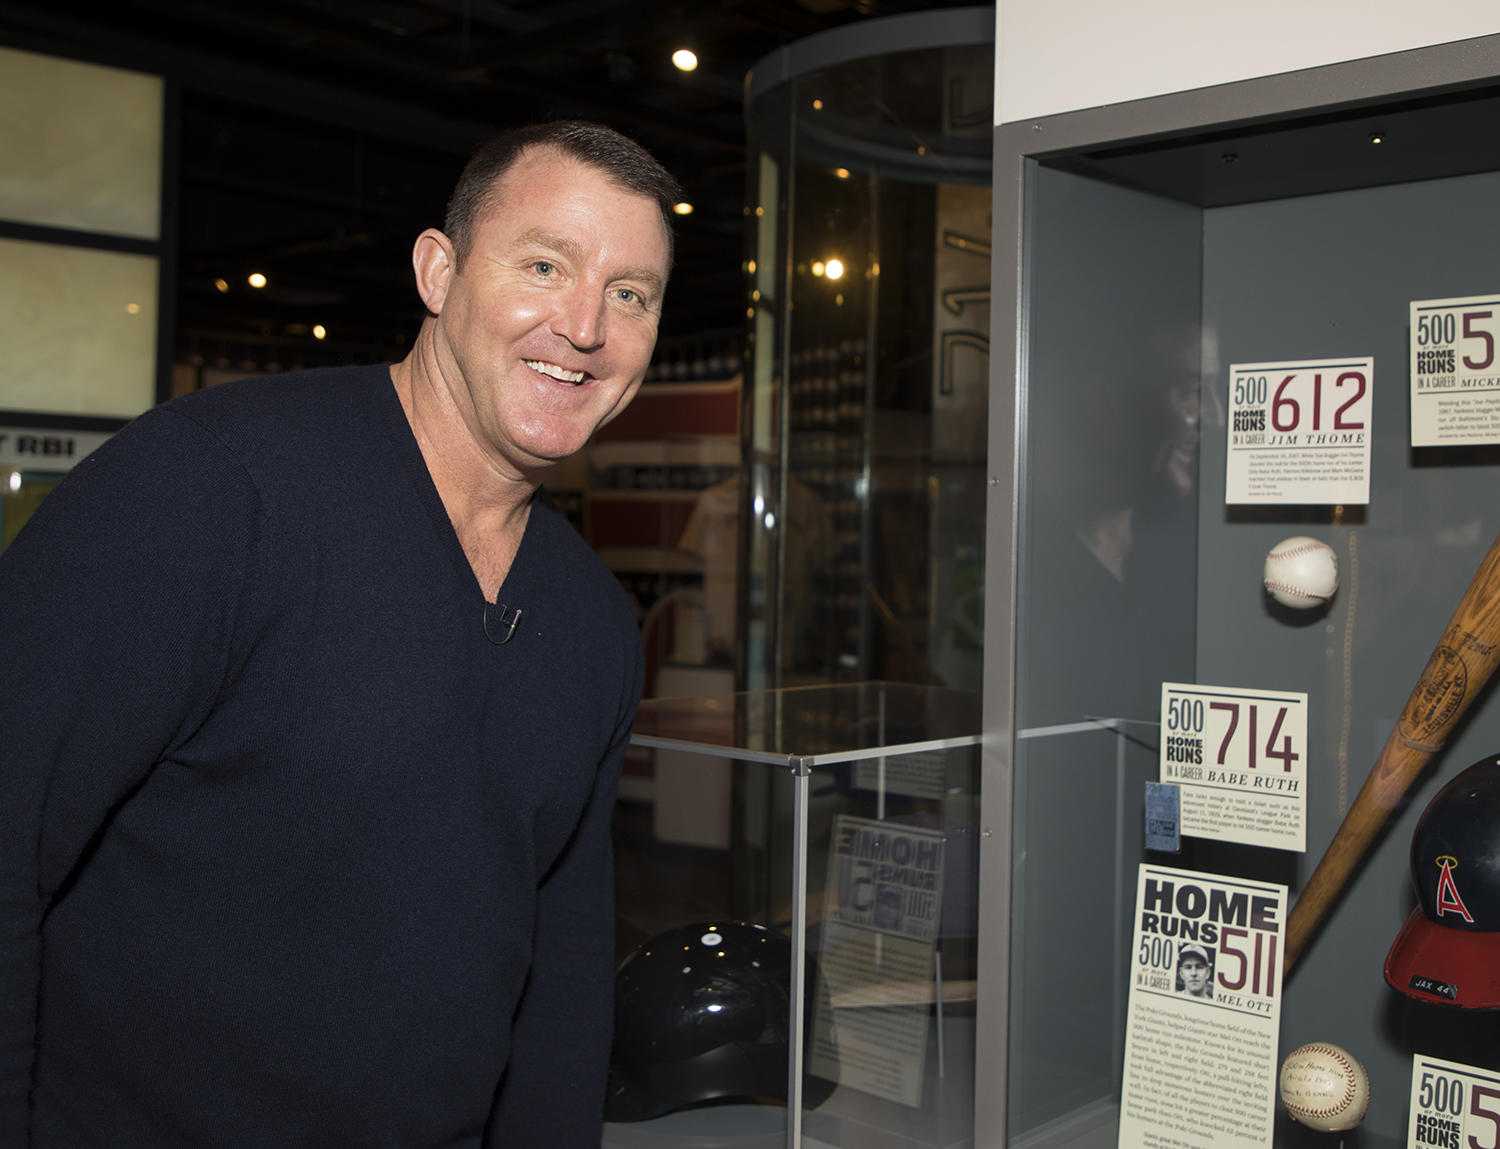 Jim Thome poses next to the baseball he hit for his 500th home run, on display in the Museum. (Milo Stewart Jr./National Baseball Hall of Fame and Museum)